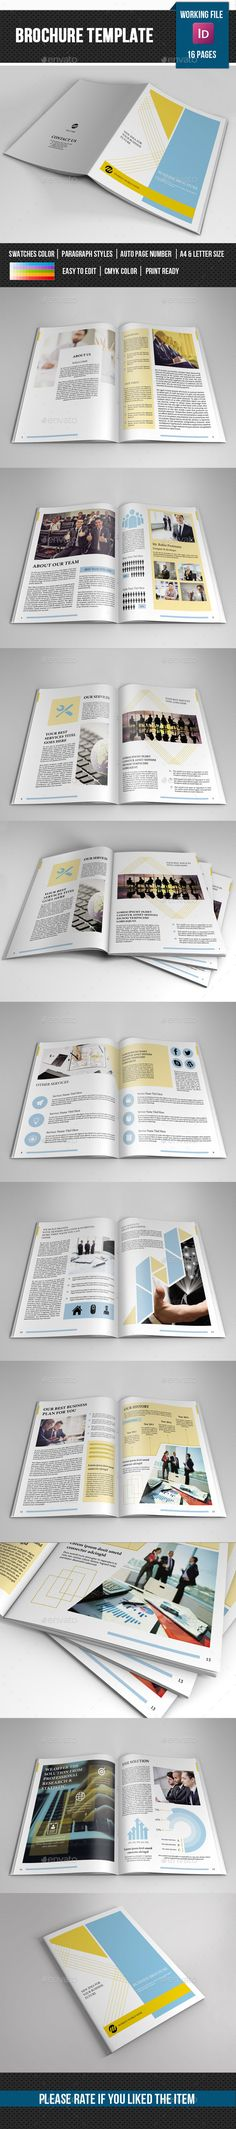 The Creative Brochure - Landscape Vol2 Brochures, Indesign - company brochure templates